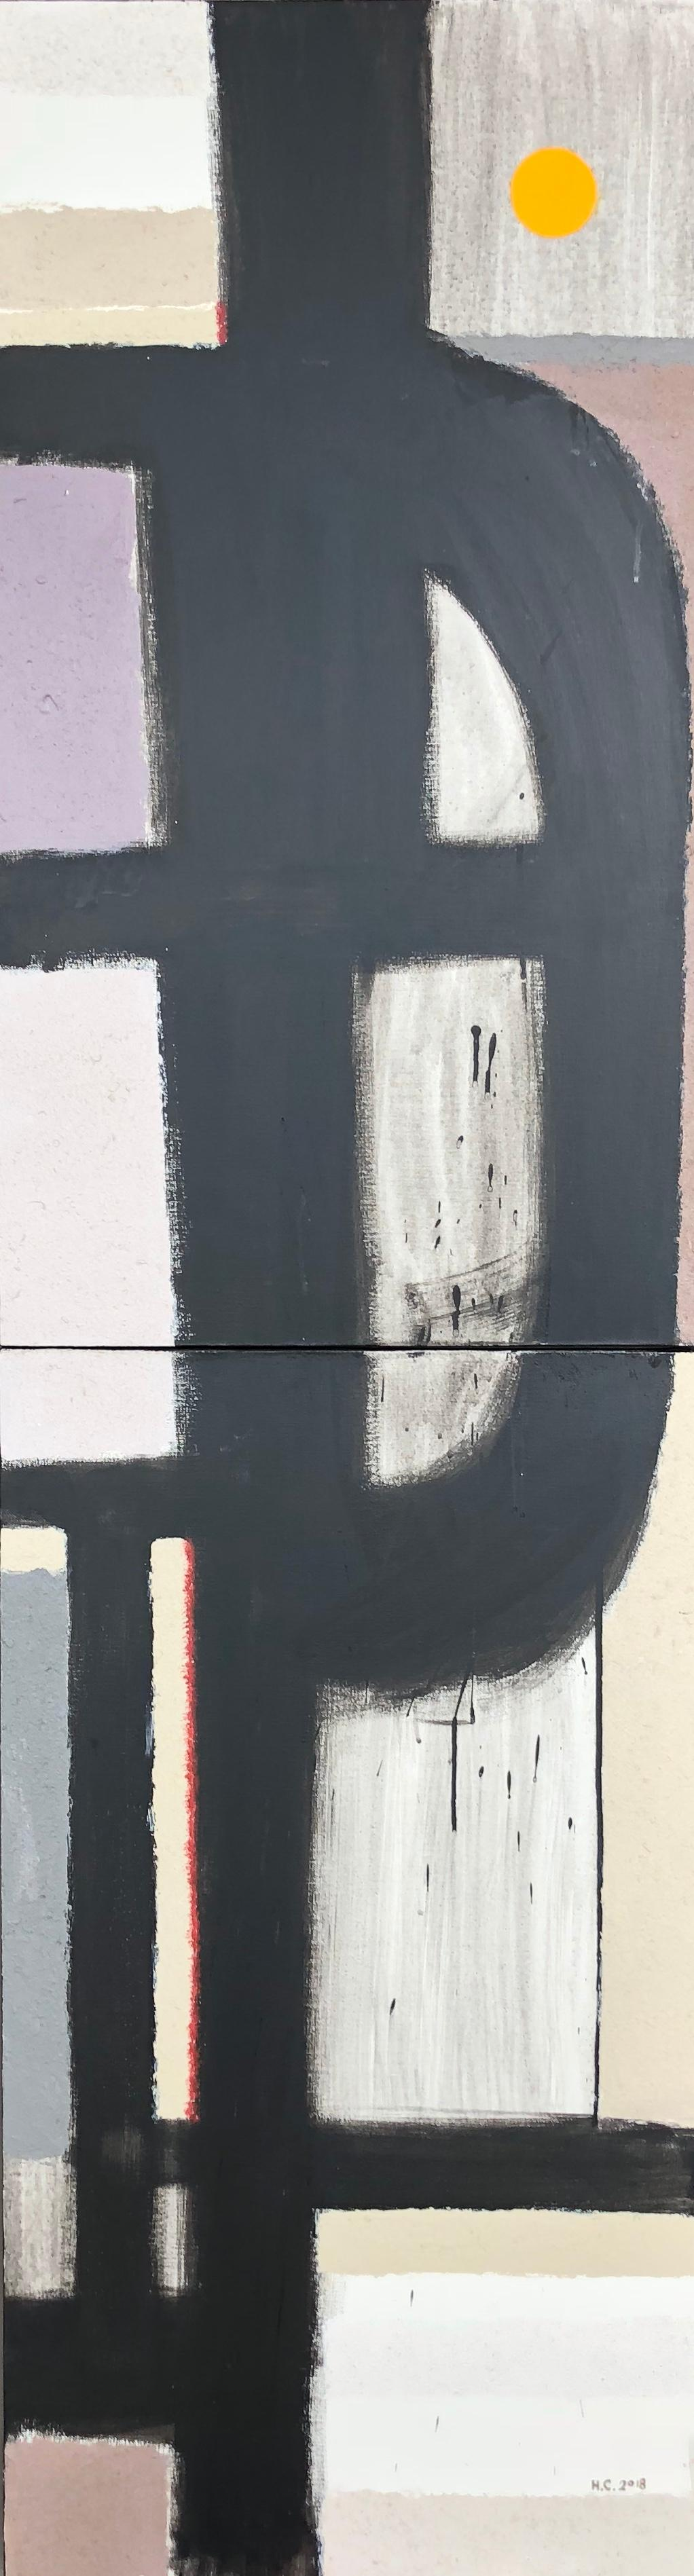 Scenery from the Vertical Series - art in black, violet, grey, beige and yellow